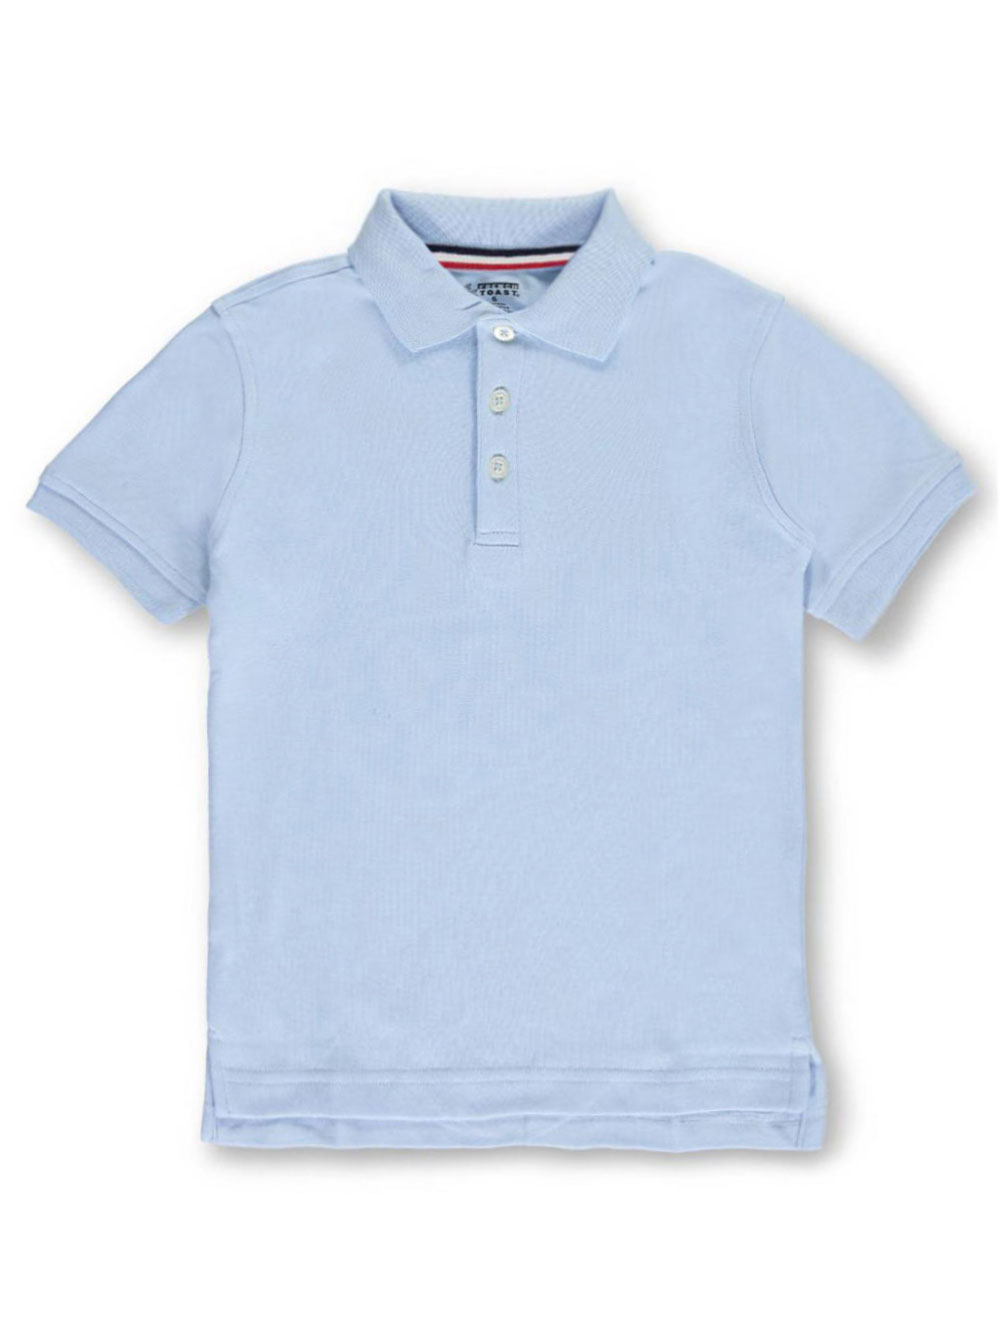 Size 5 Knit Polos for Boys